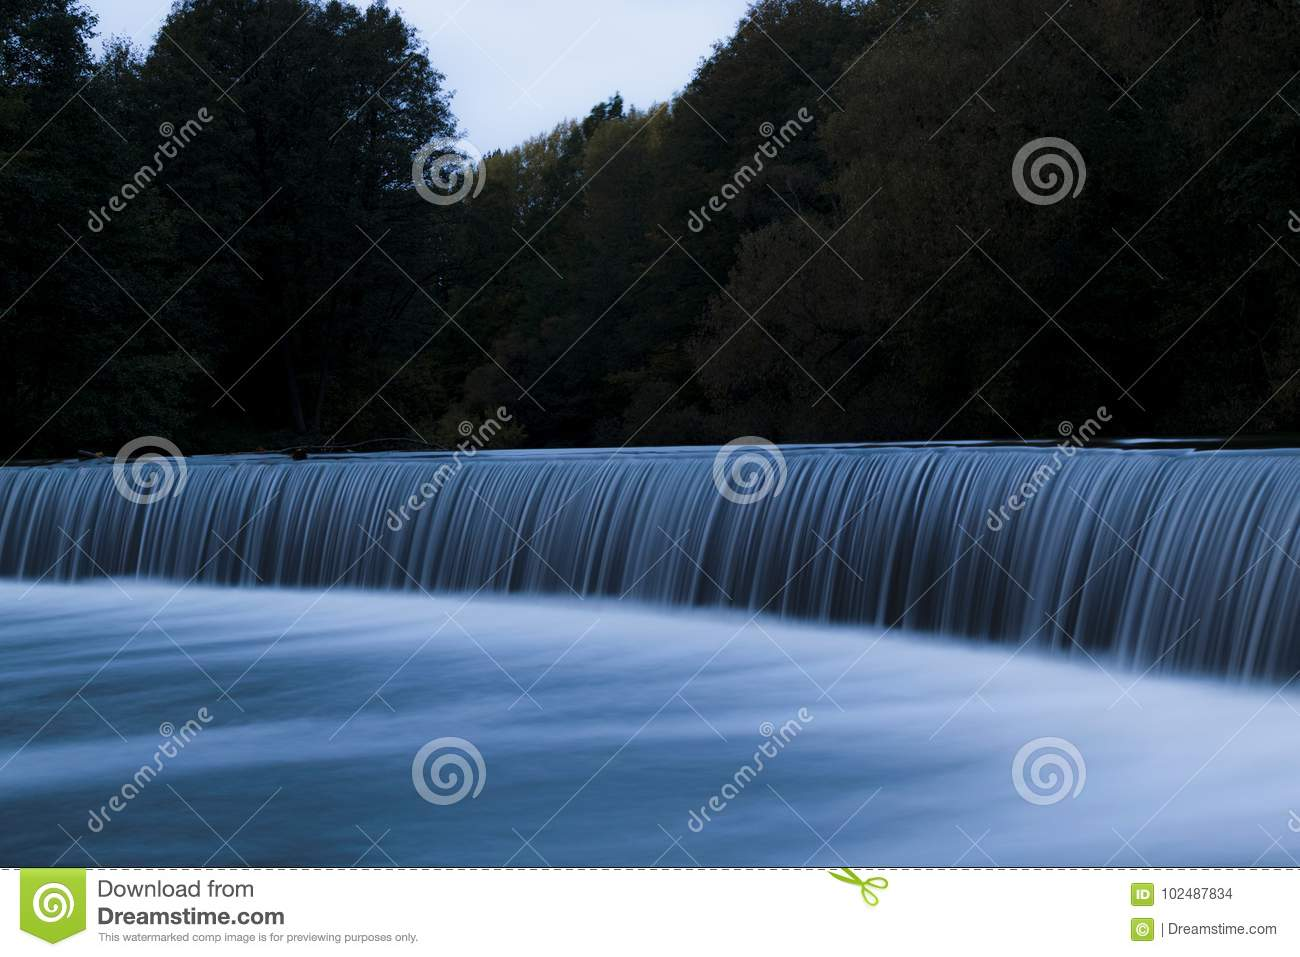 Water, Waterfall, River, Nature, Landscape, Stream, Cascade, Fall